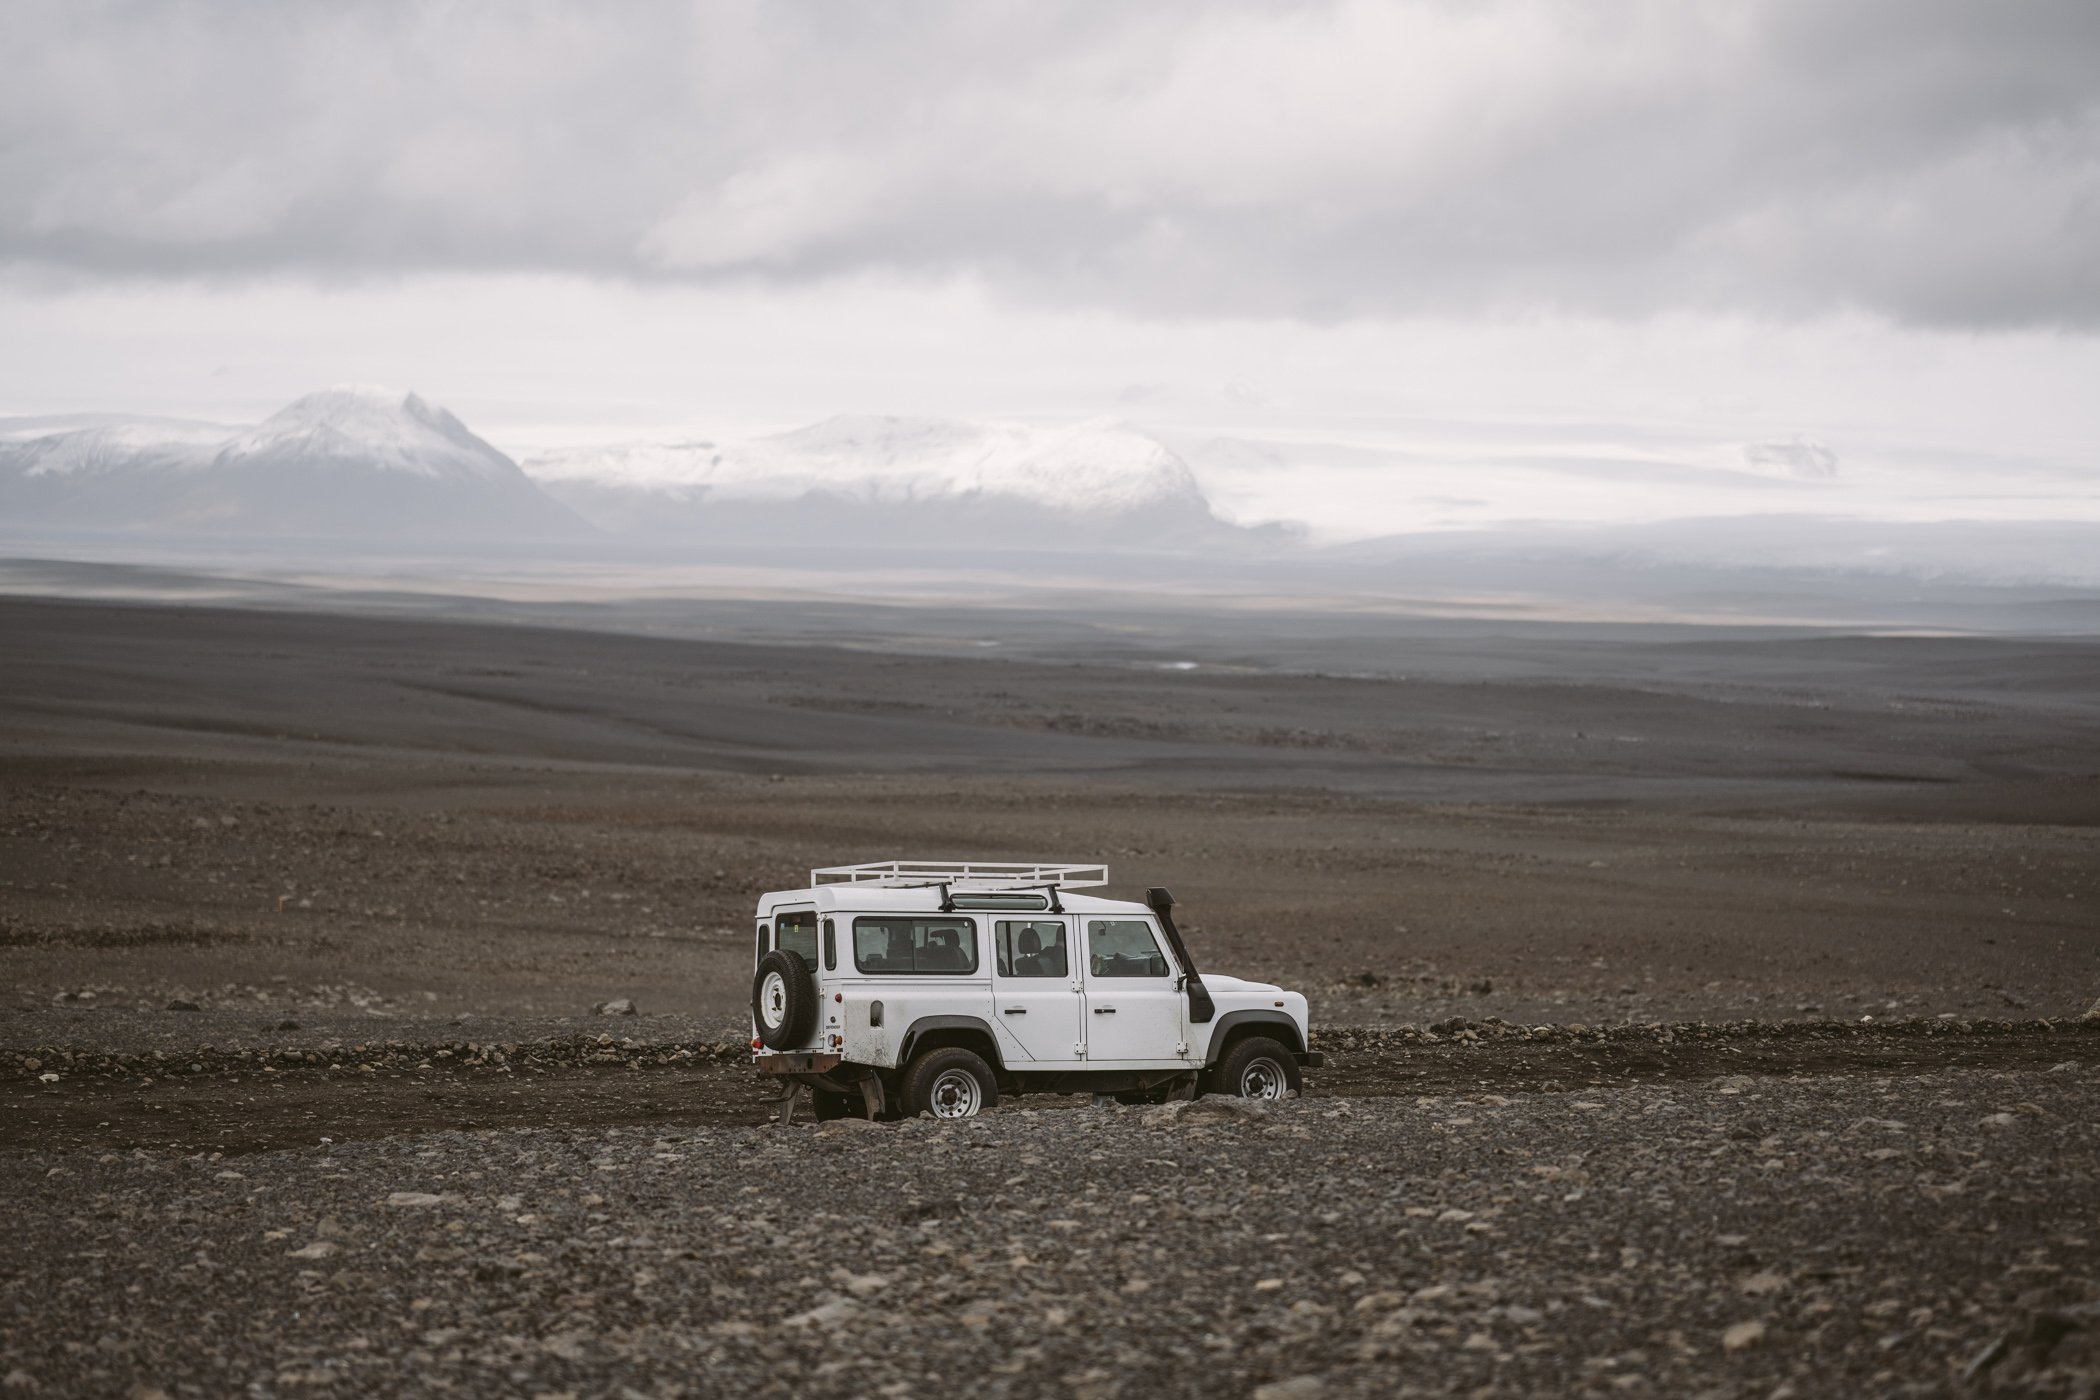 Iceland Roadtrip with a Landrover Defender